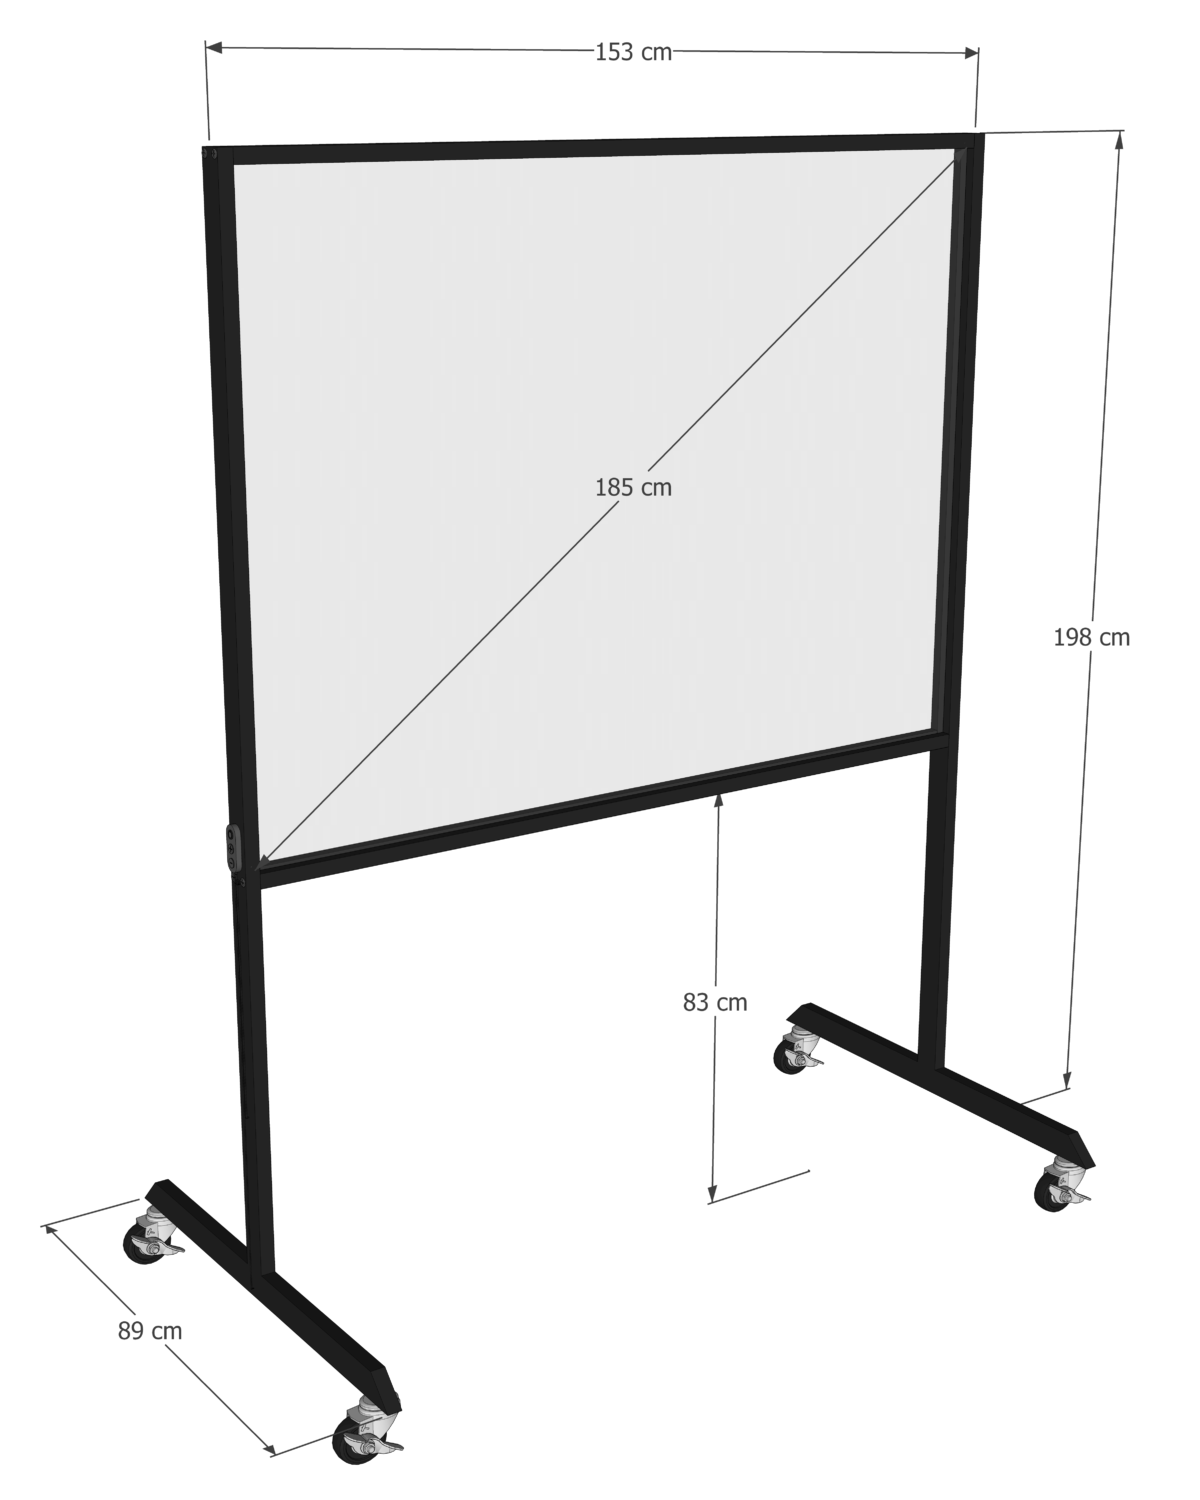 lightboard classic product dimensions